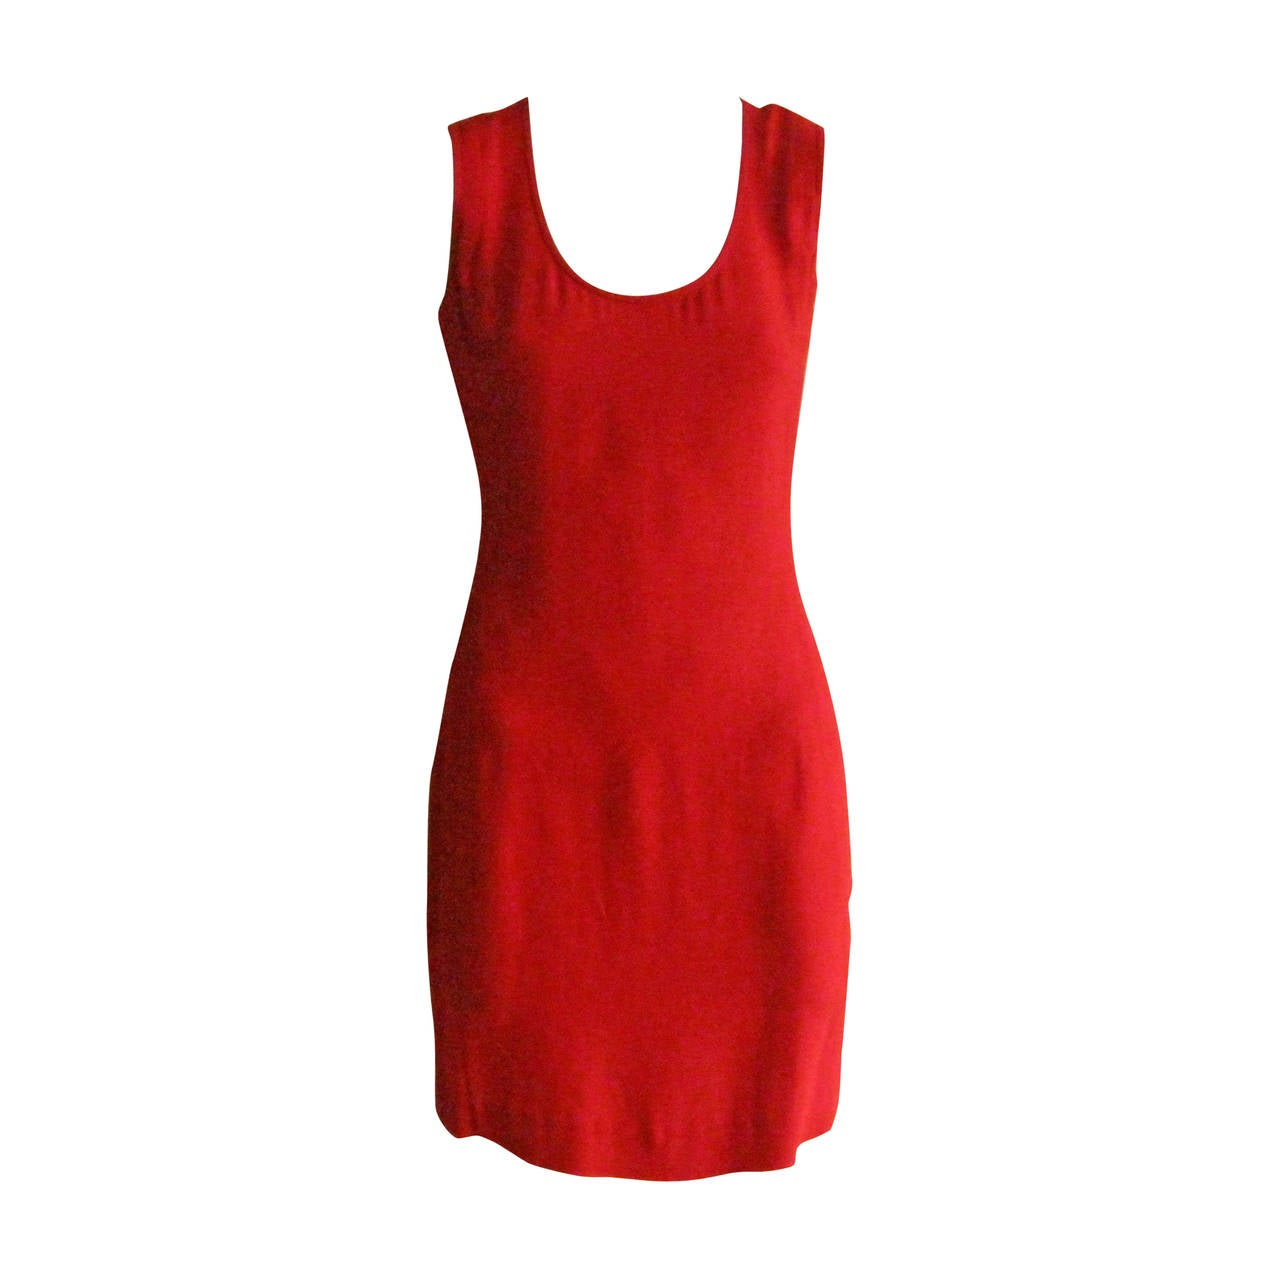 1990s Dries Van Noten Simple Red Dress (38) 1